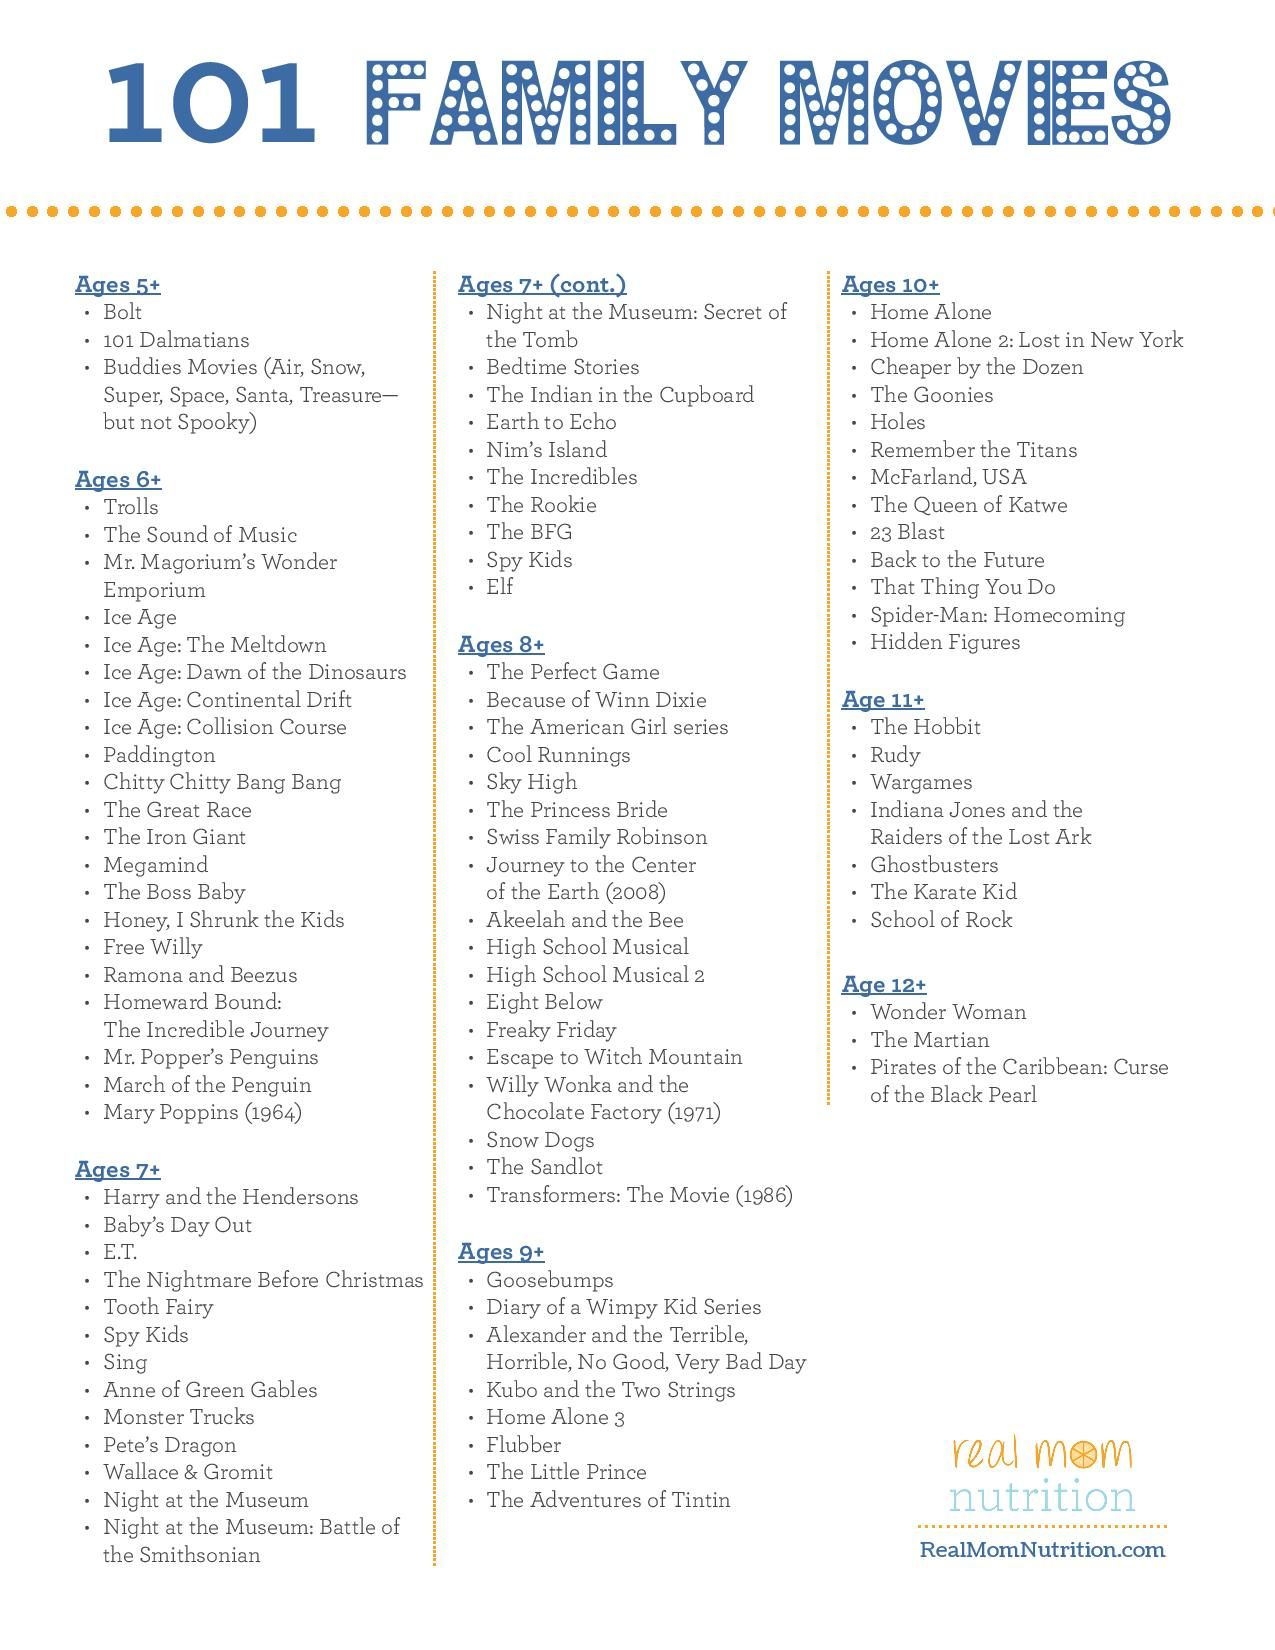 101 Family Movies You & Your Kids Will Love | Veggie nuggets, Family ...